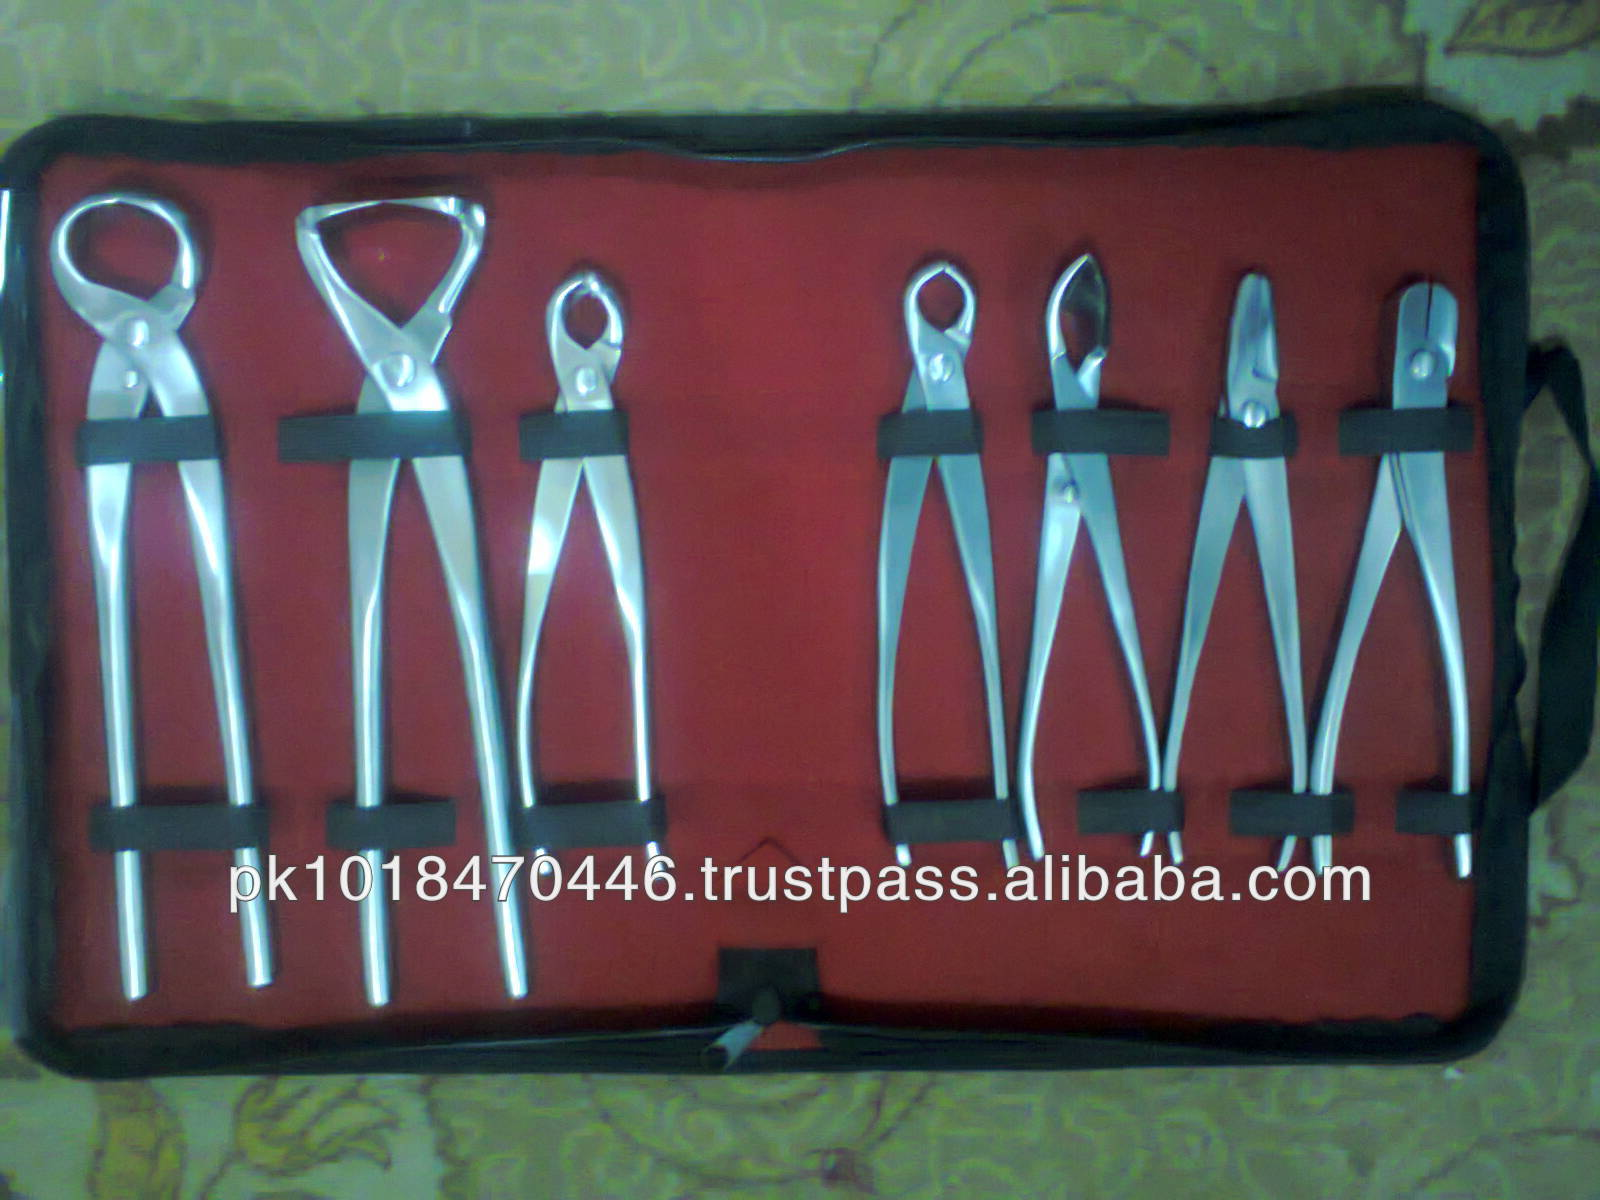 Stainless steel Bonsai/Garden tools in a kit bag